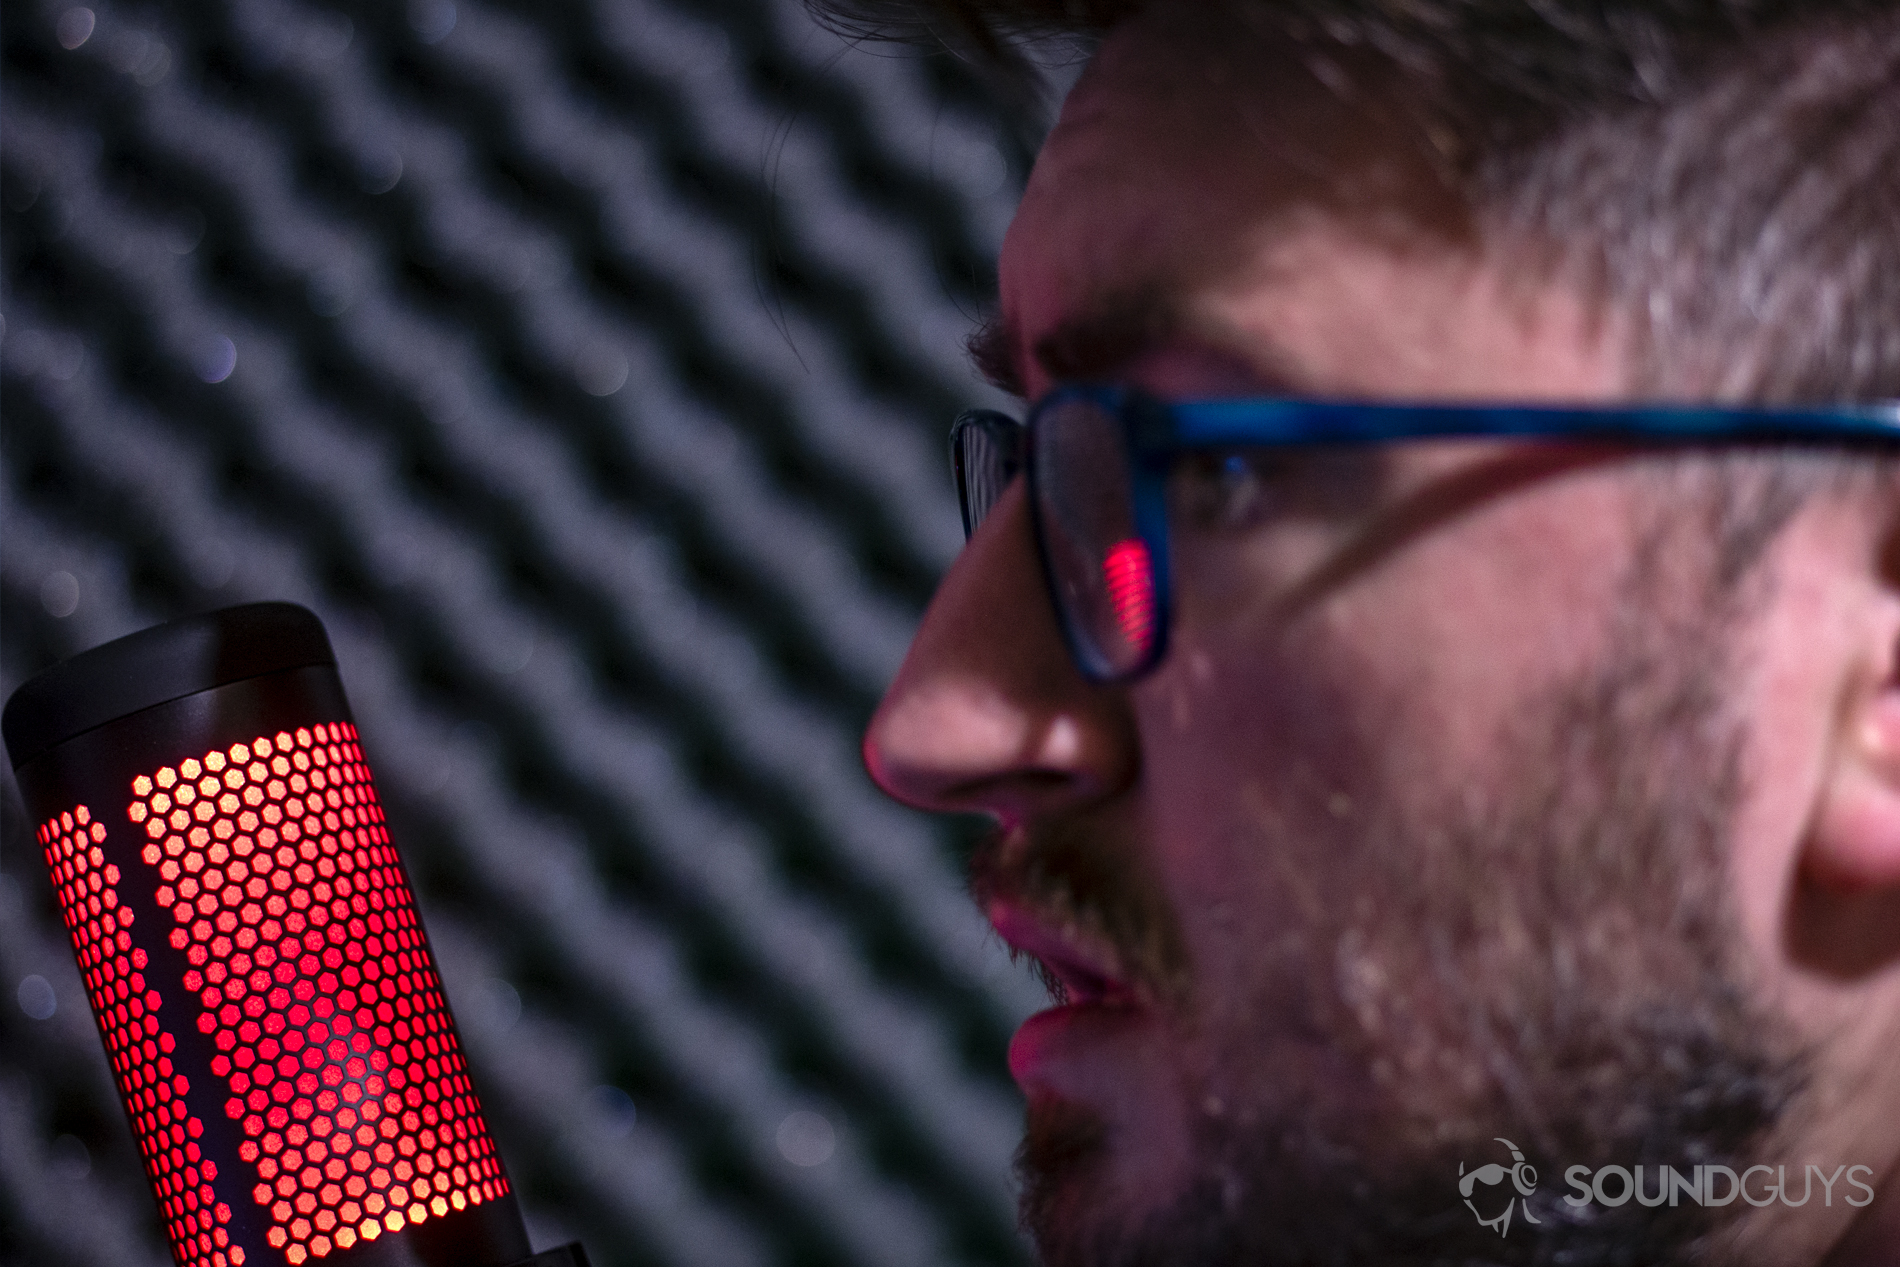 HyperX Quadcast microphone review - SoundGuys